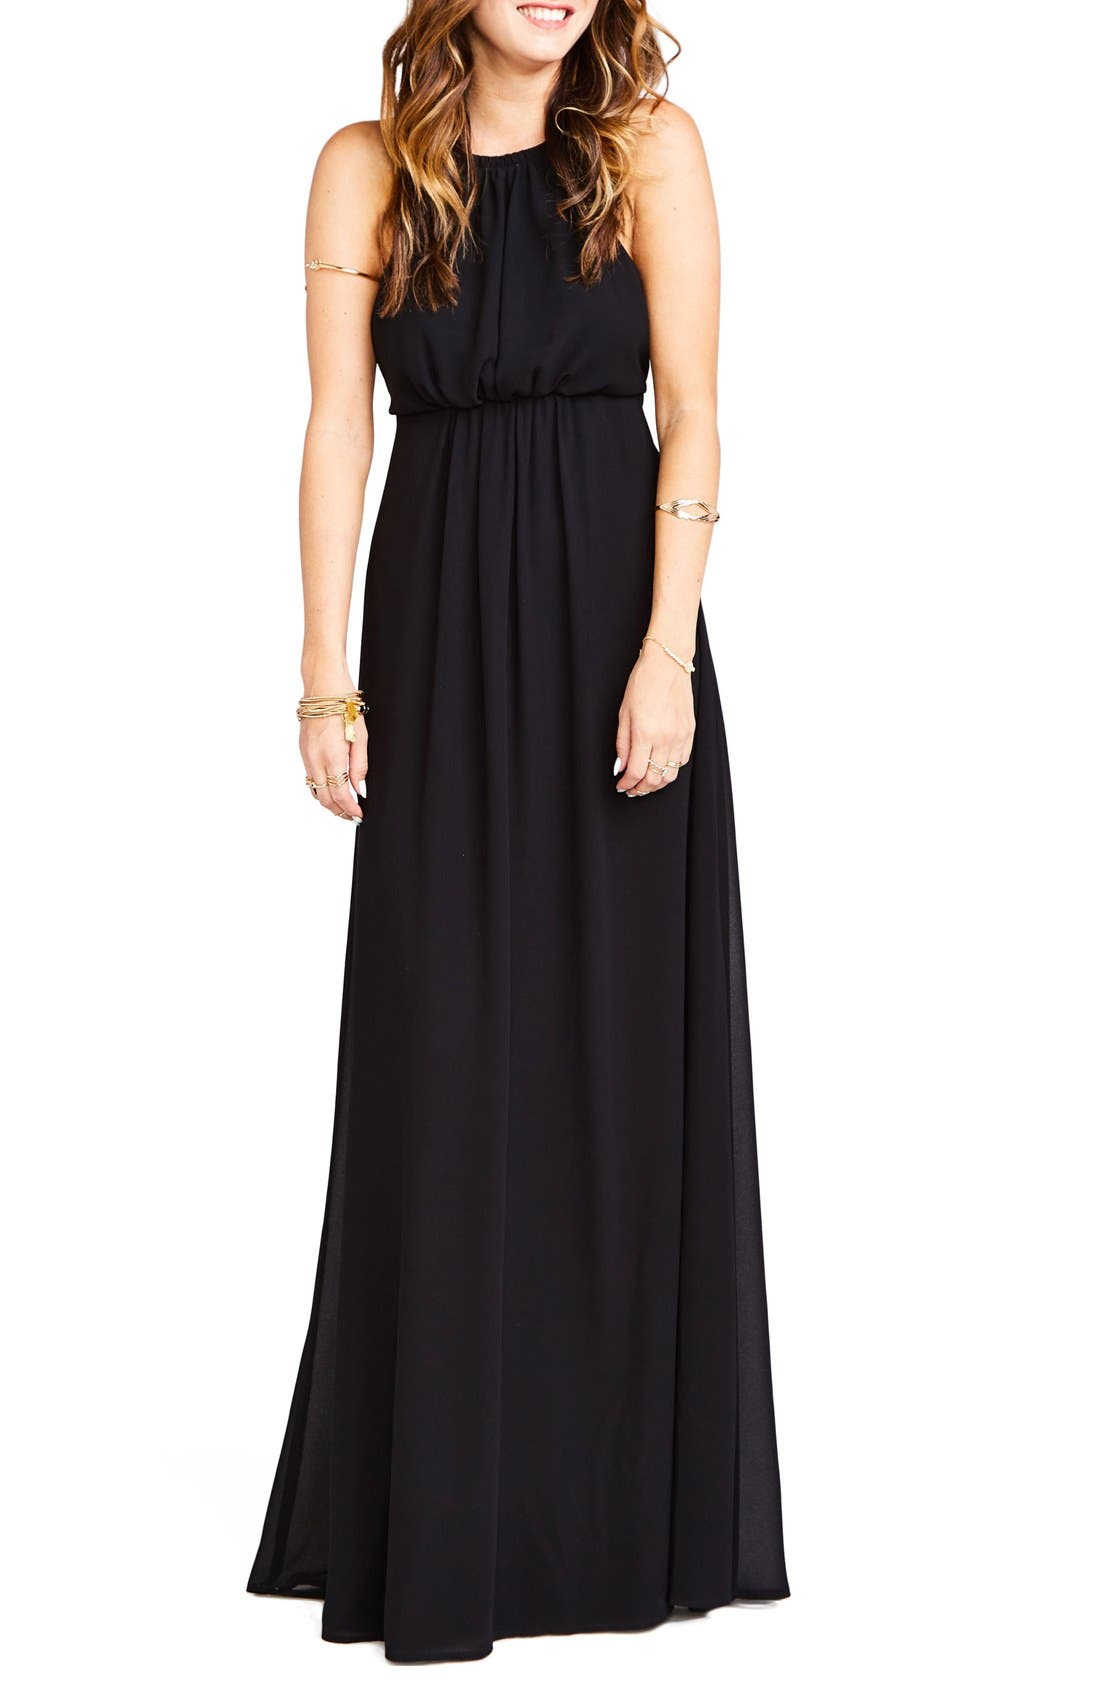 Amanda Open Back Blouson Gown,                         Main,                         color, Black Chiffon